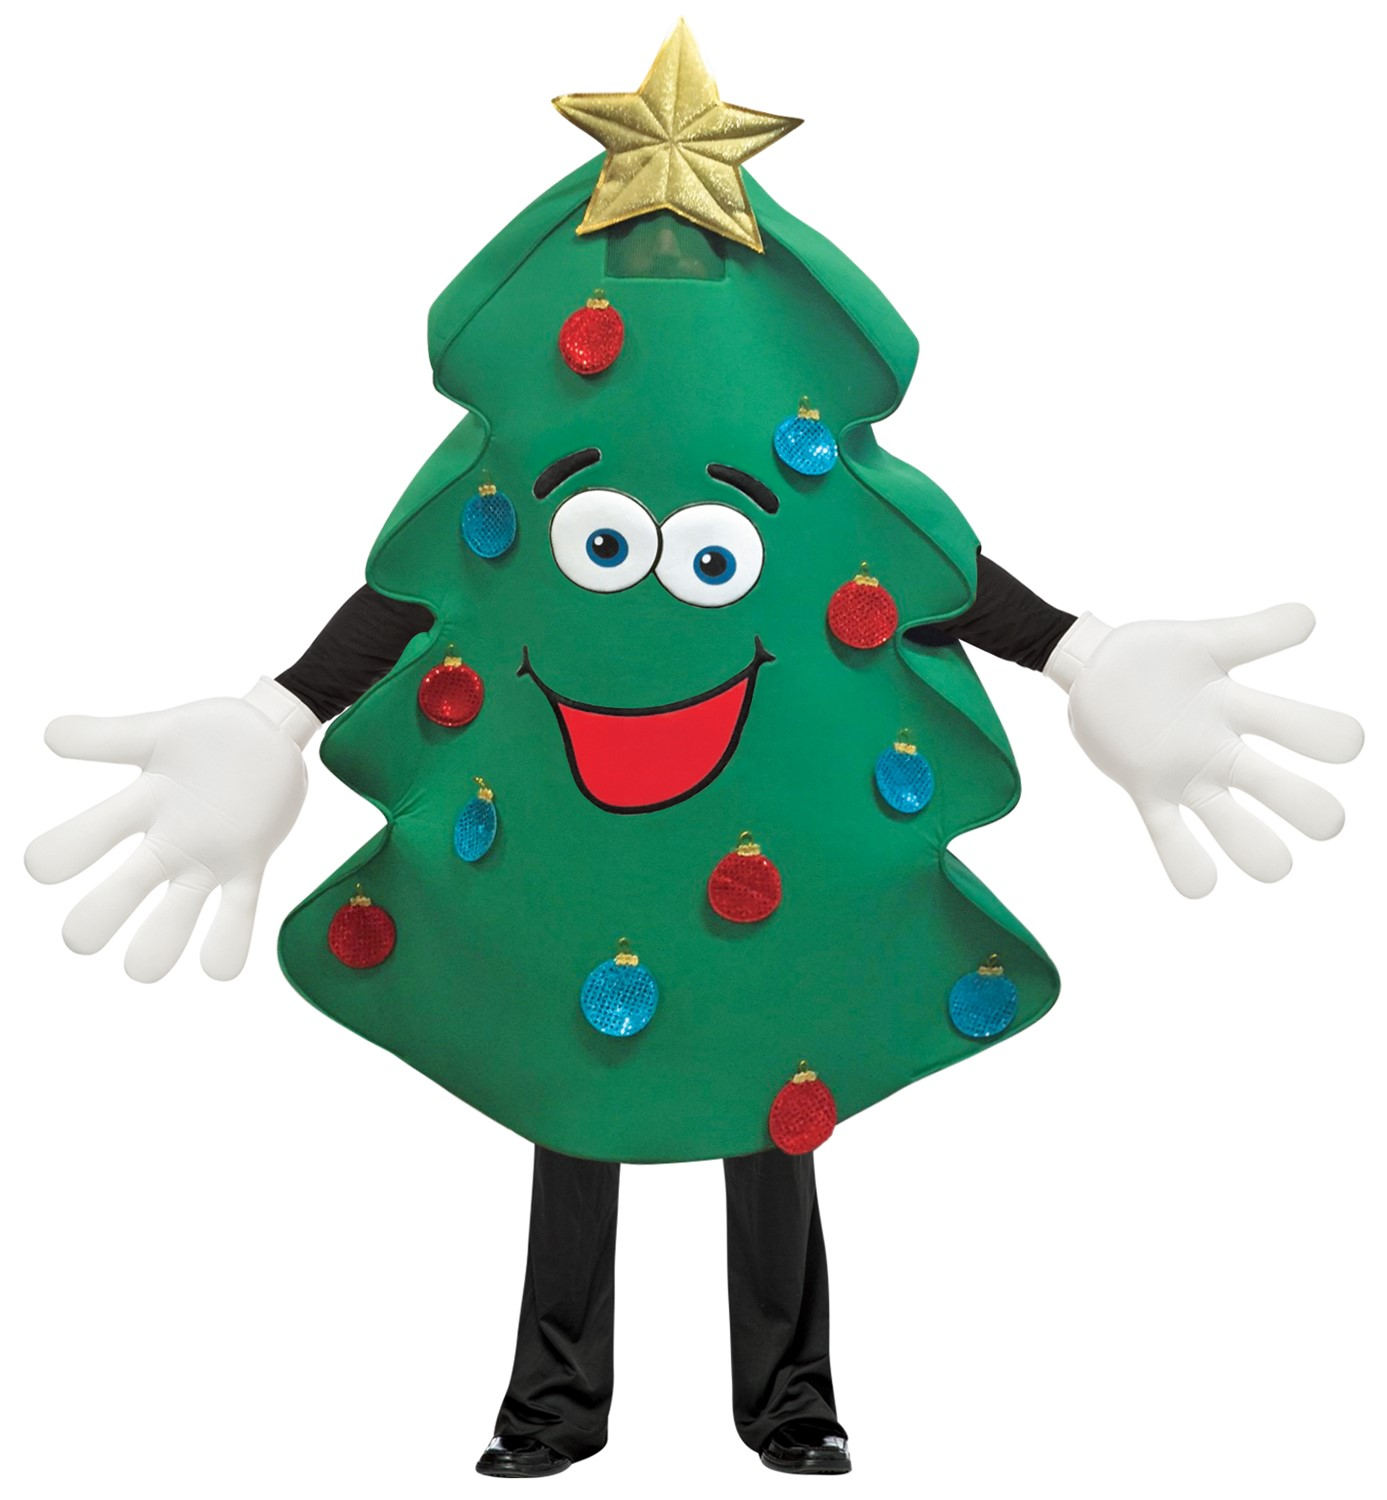 Christmas Tree Costume.Rasta Imposta Mascot Quality Christmas Tree Costume Deluxe Waver For Promotions Marketing Events